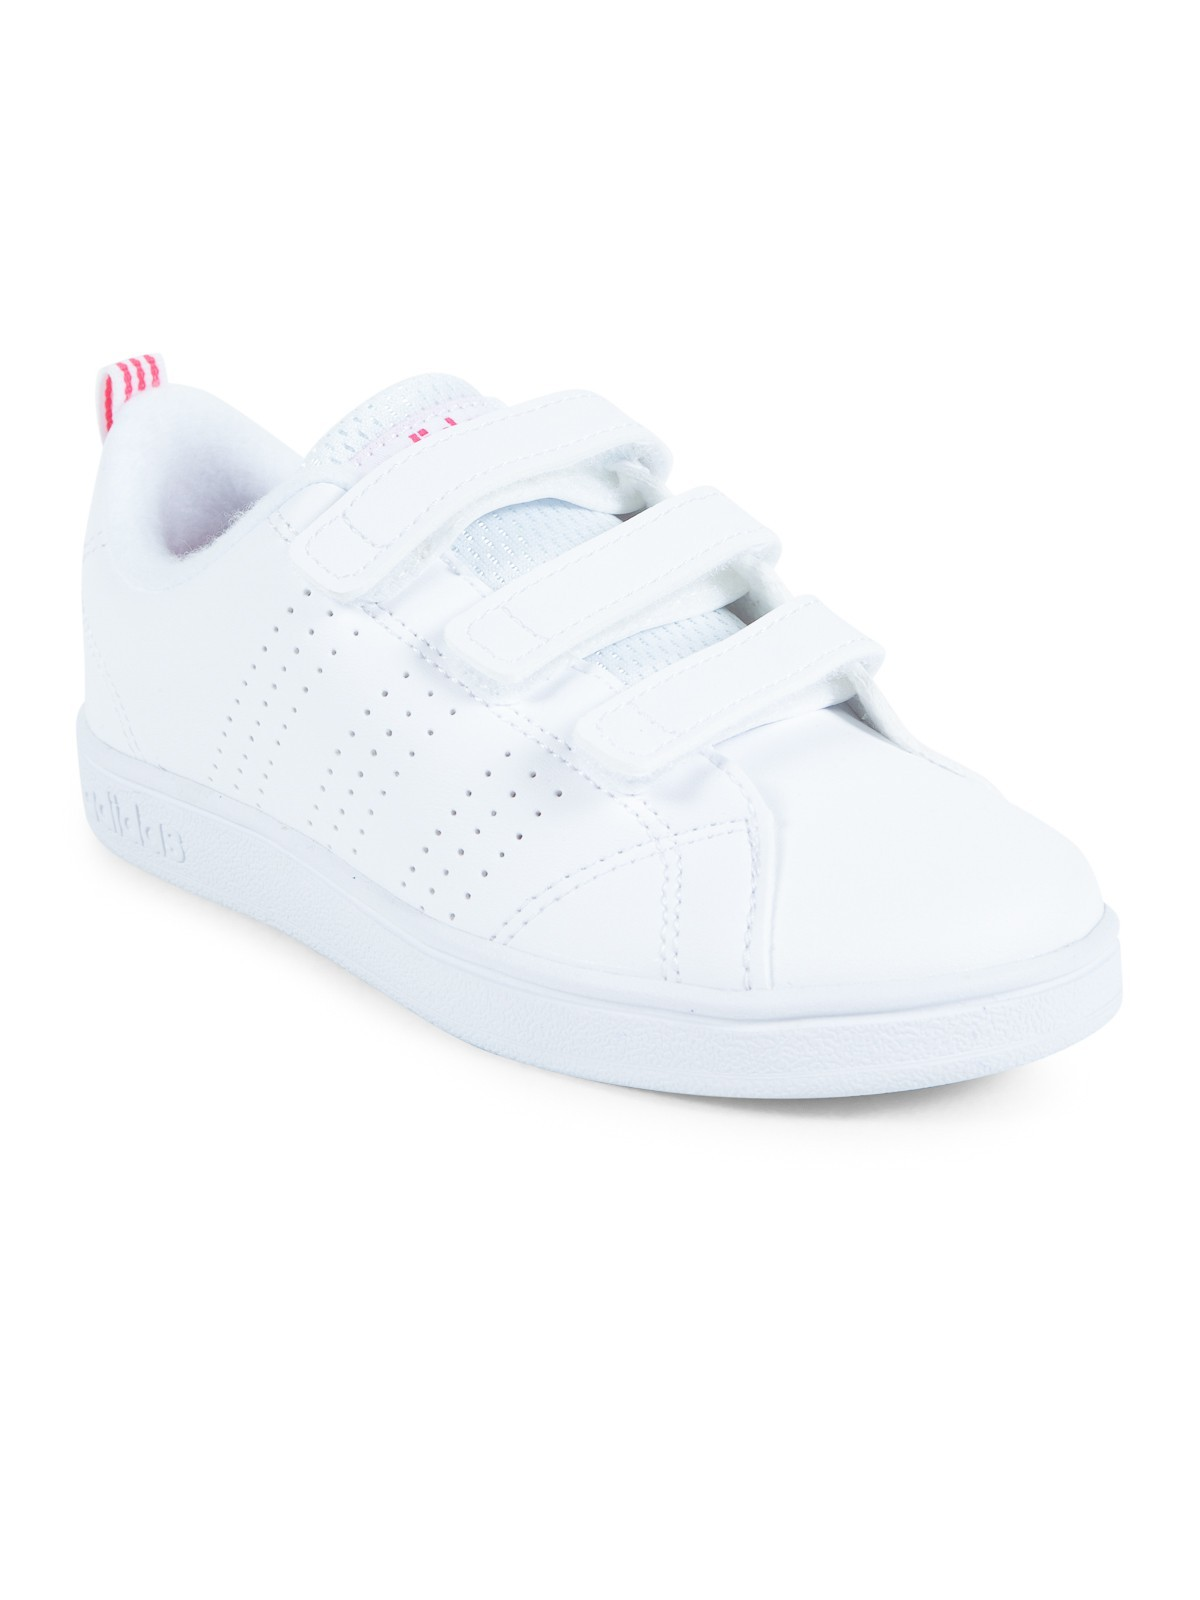 Basket Adidas fille blancrose (30 35) DistriCenter